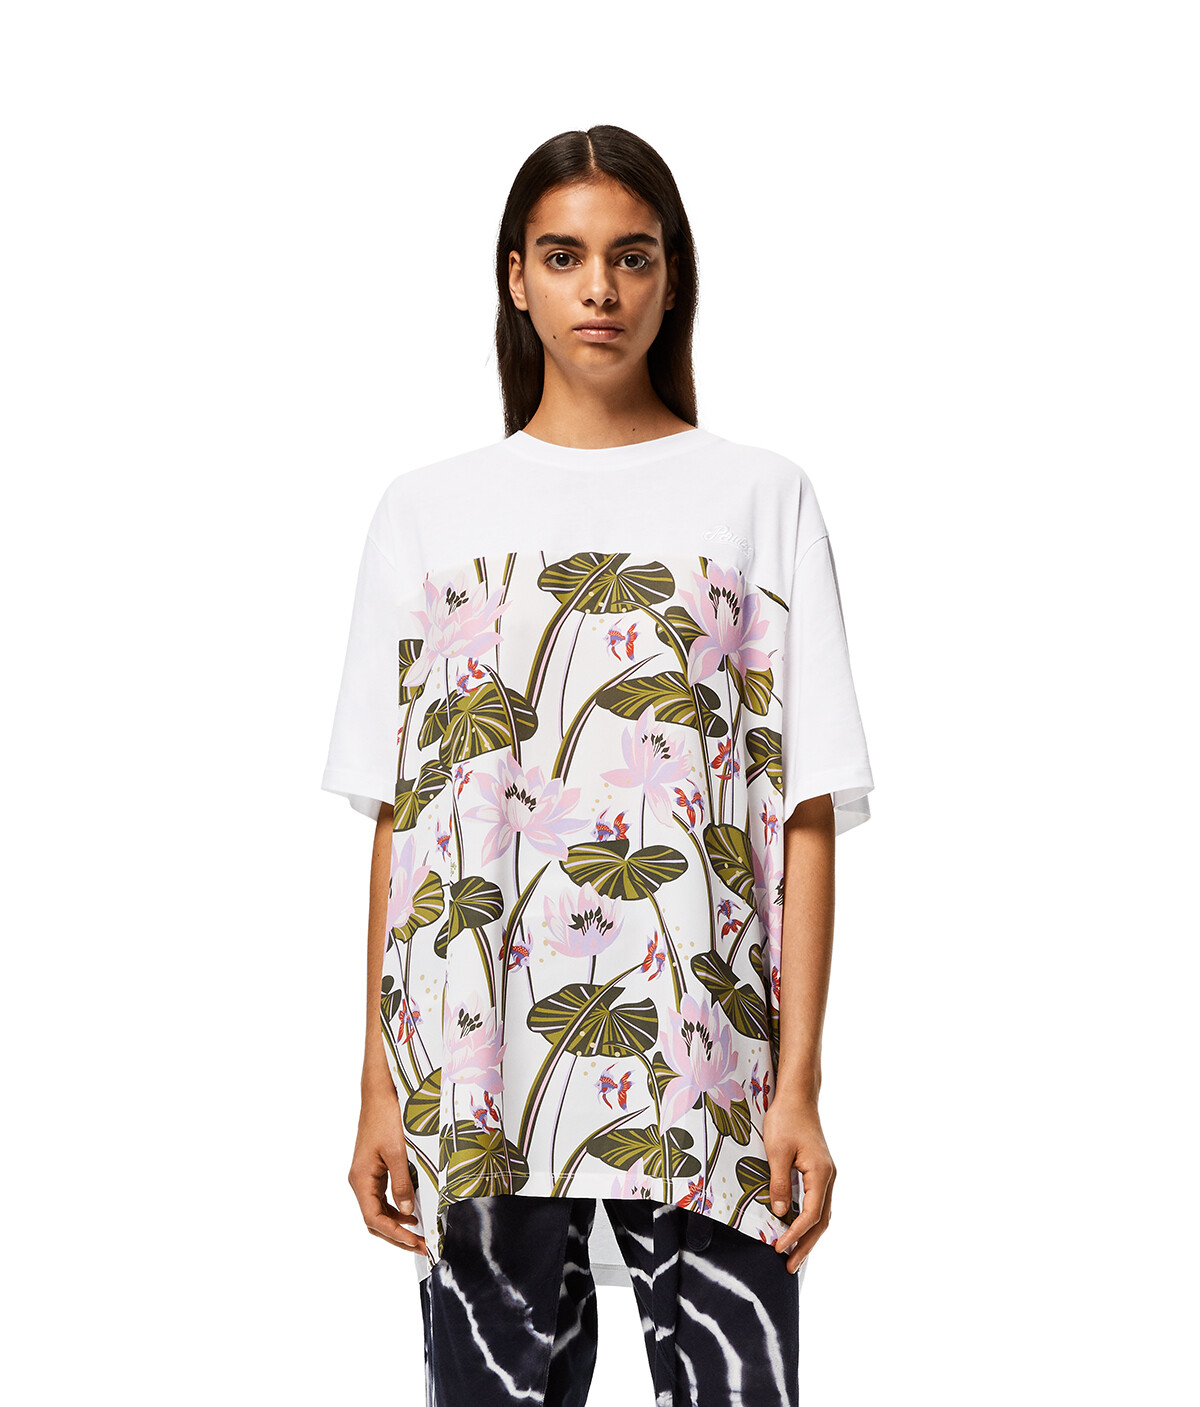 LOEWE Oversize T-Shirt In Waterlily Cotton And Silk Pink/White front